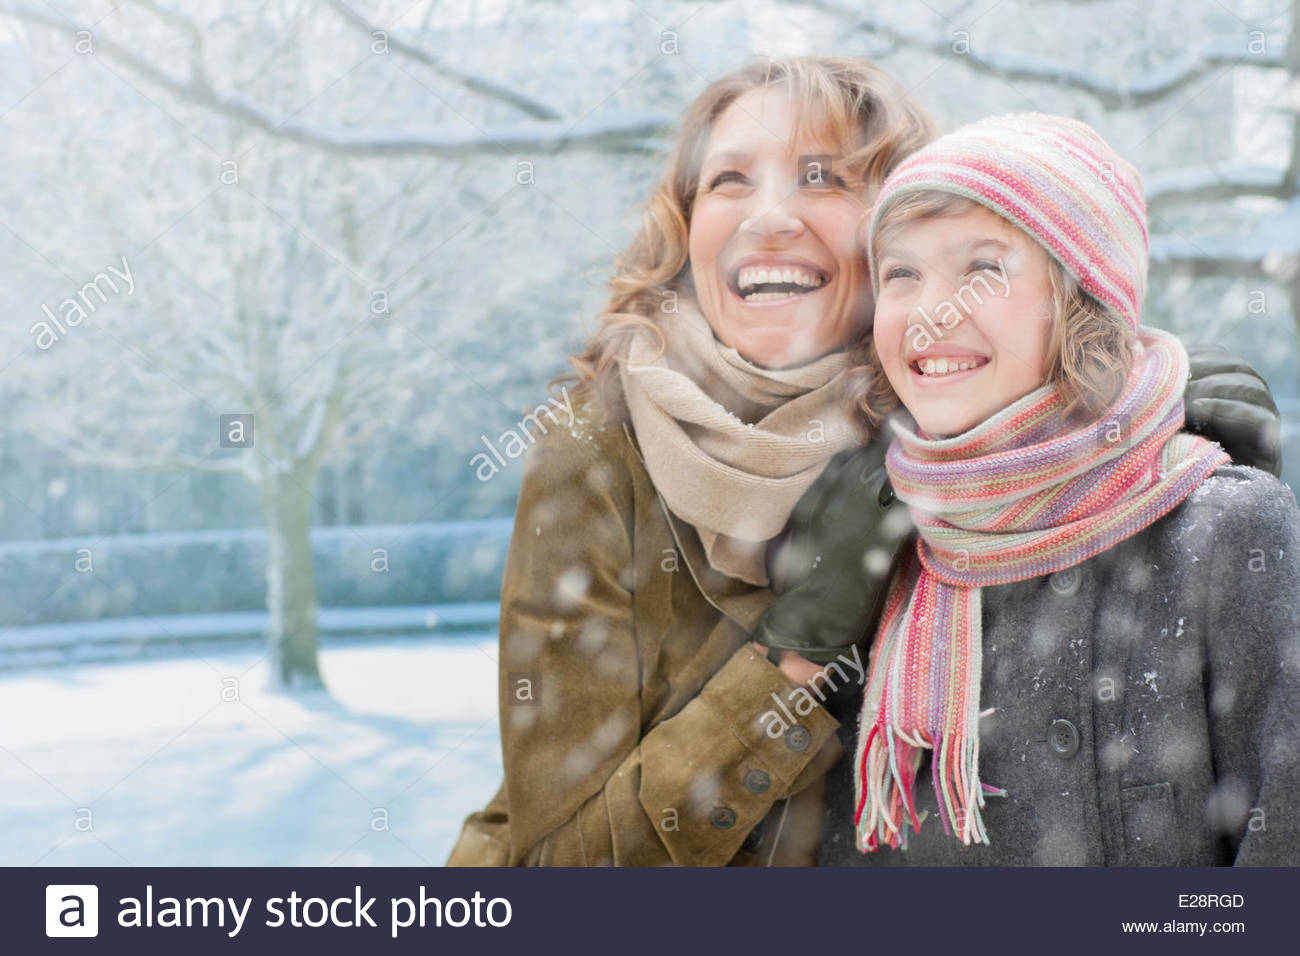 Snow falling on smiling mother and daughter - Stock Image